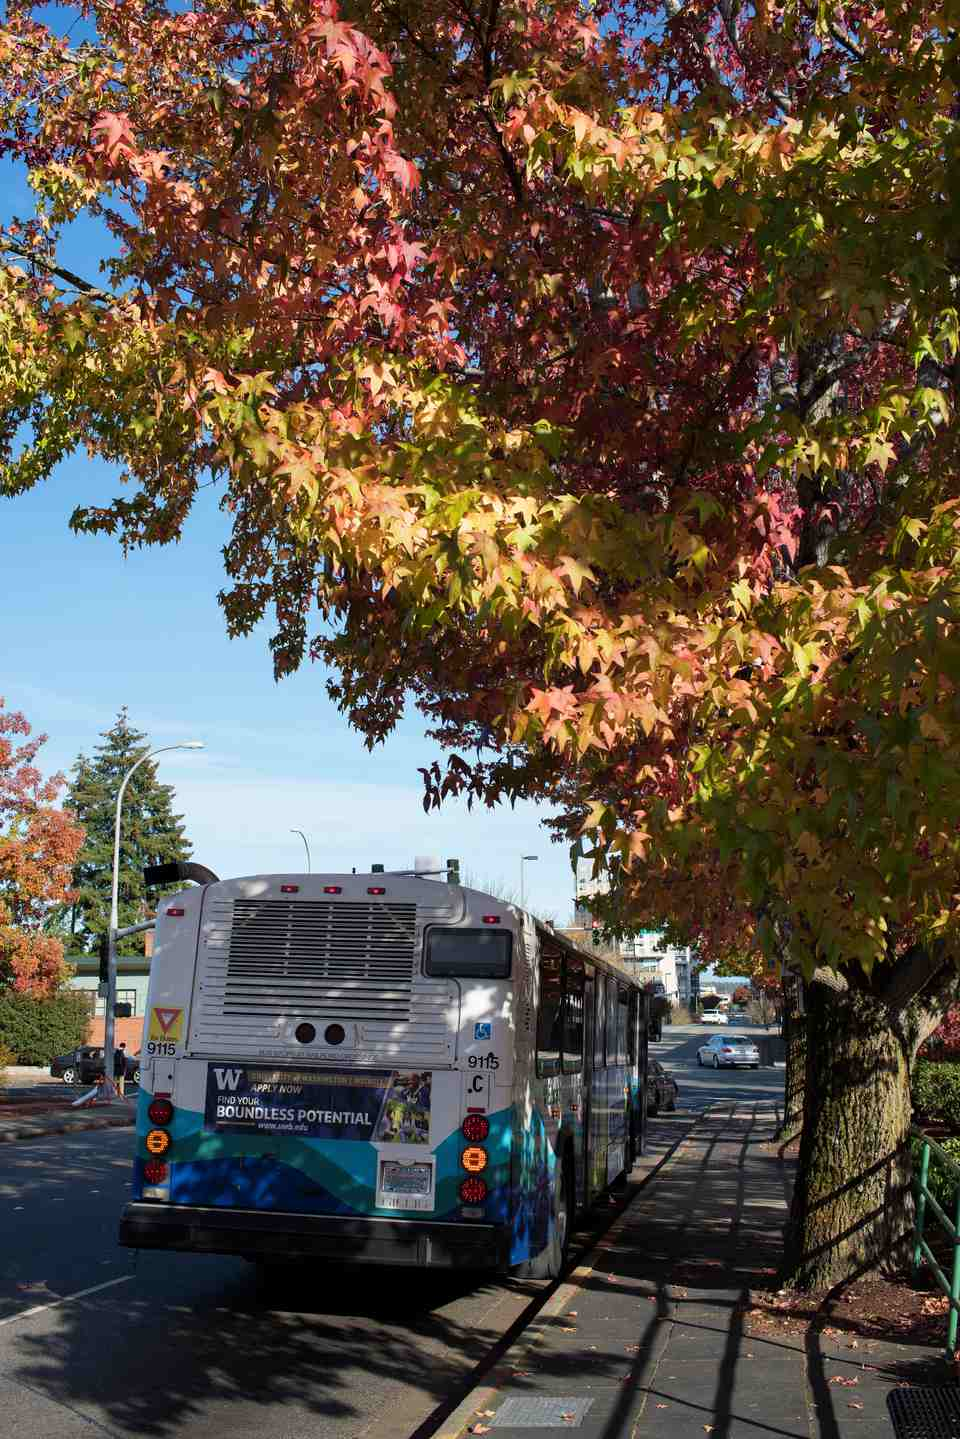 Bus at a Seattle bus stop in Fall